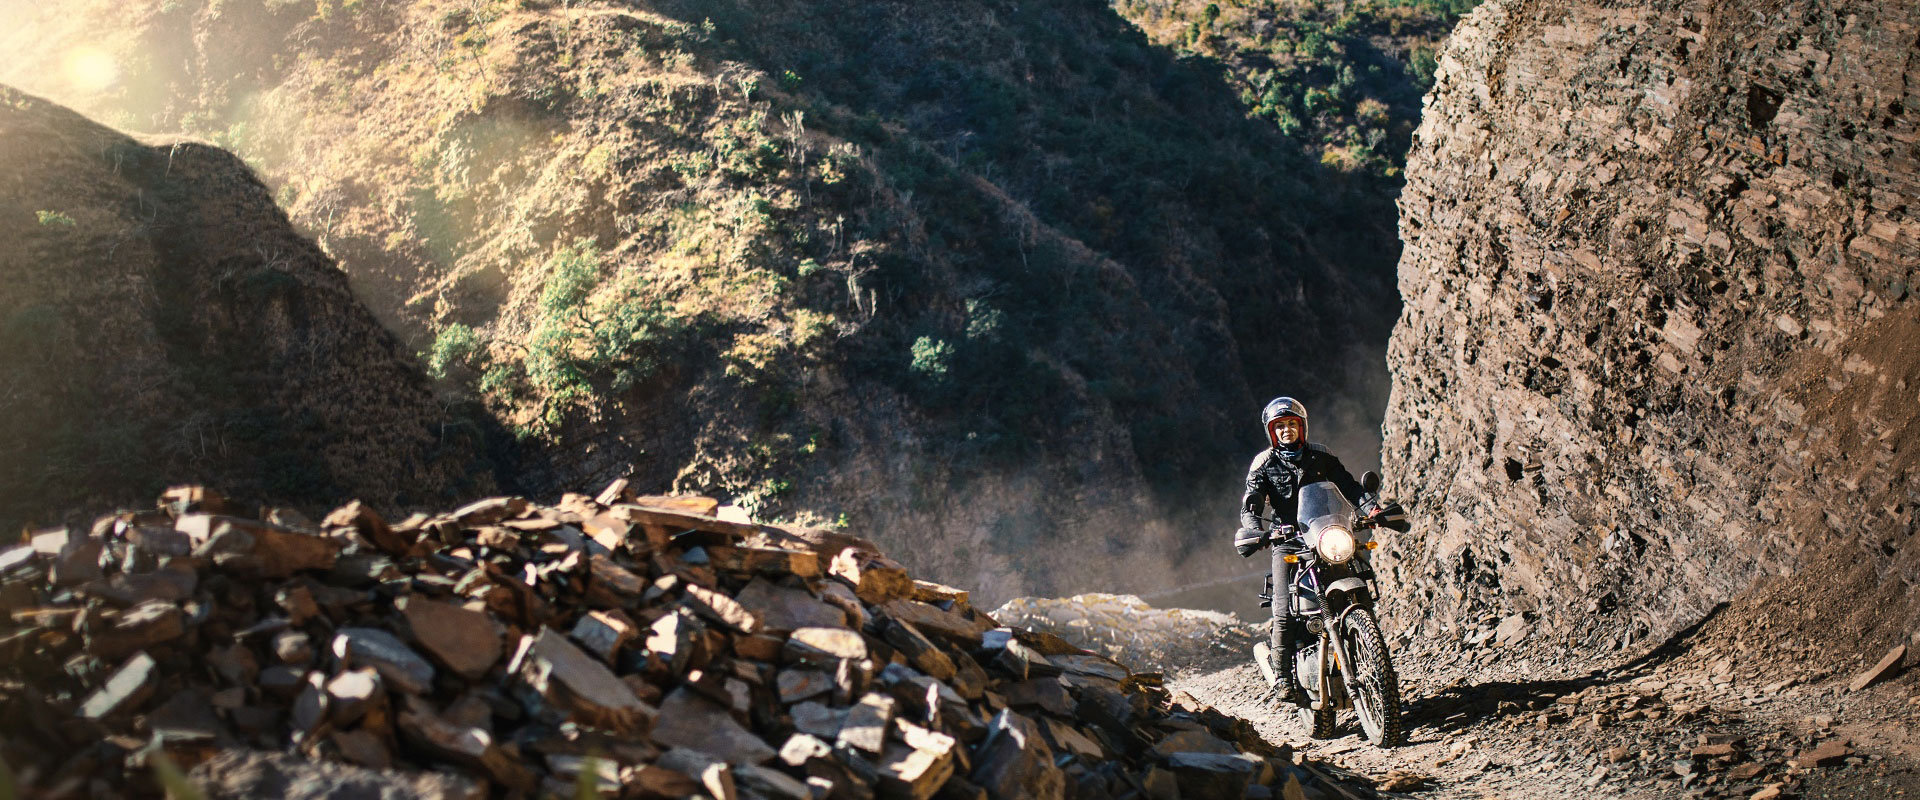 Hit the trail with the Royal Enfield Enfield Himalayan